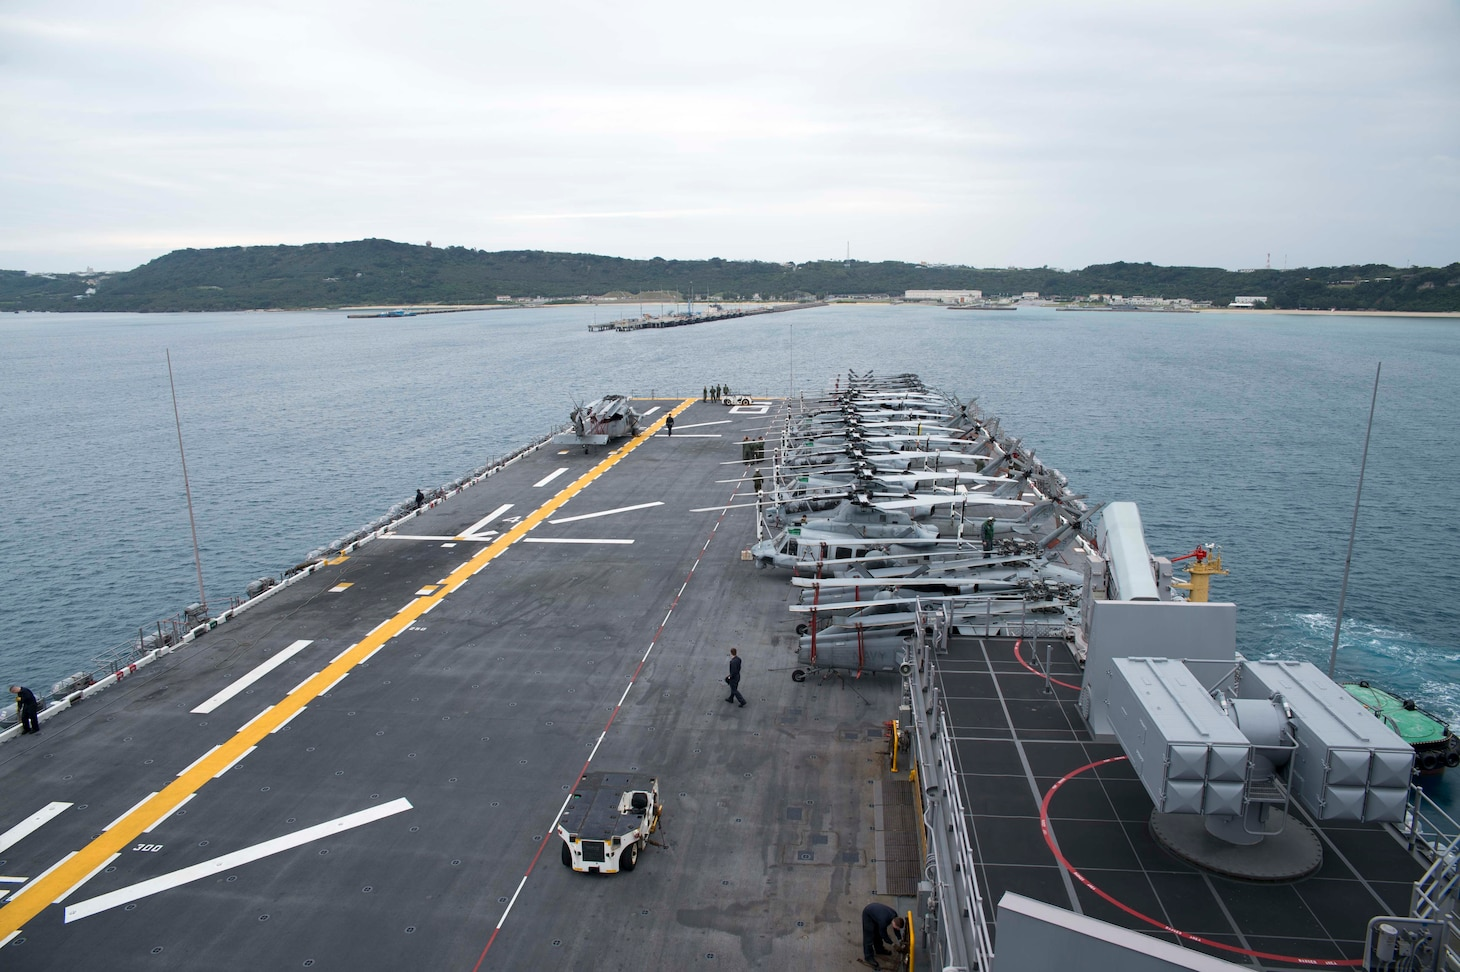 The amphibious assault ship USS Bonhomme Richard (LHD 6) approaches the pier at White Beach Naval Facility. During the visit, the ship will embark 3d Marine Division personnel, vehicles and equipment, prior to continuing a scheduled patrol.